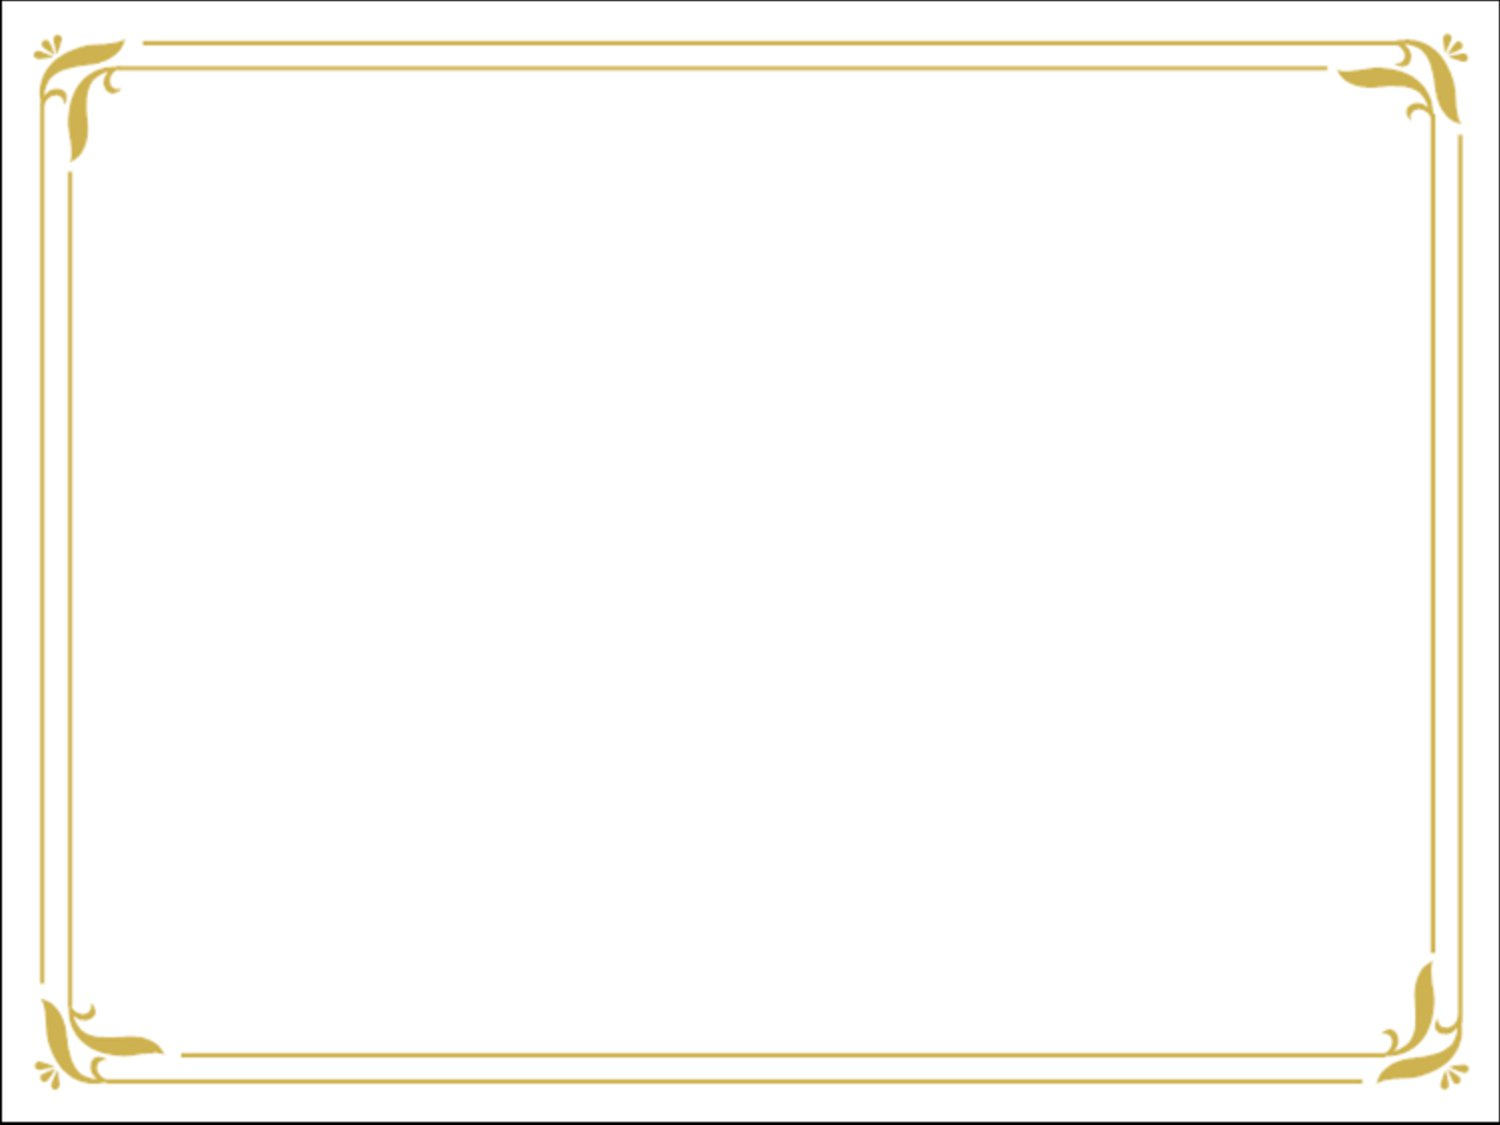 Formal Invitation Borders